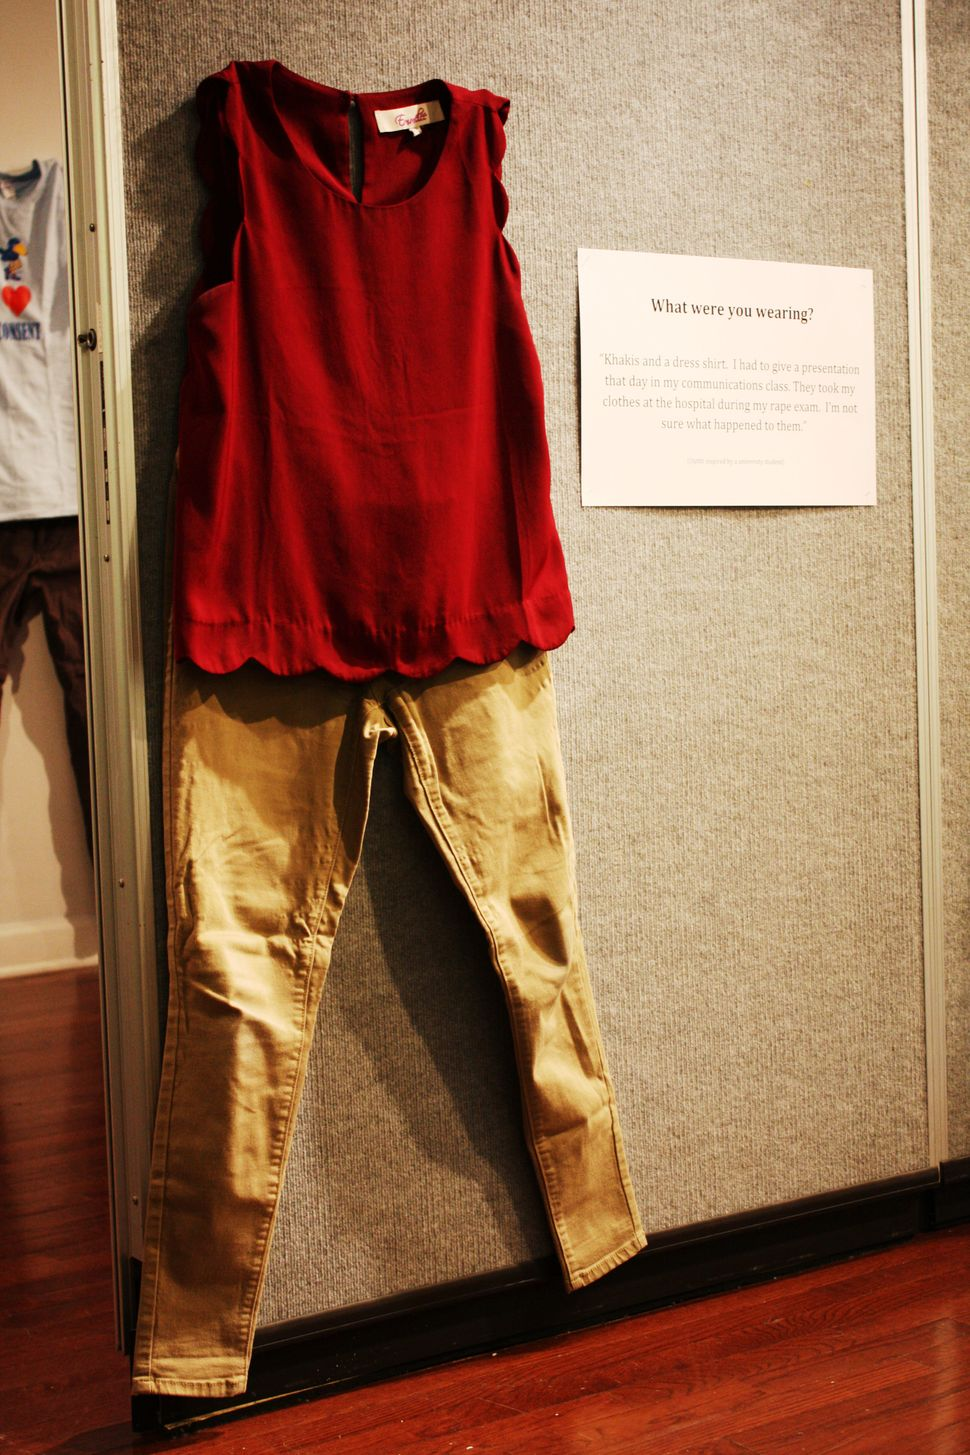 7bc2d50ea710 Art Exhibit Powerfully Answers The Question 'What Were You Wearing ...